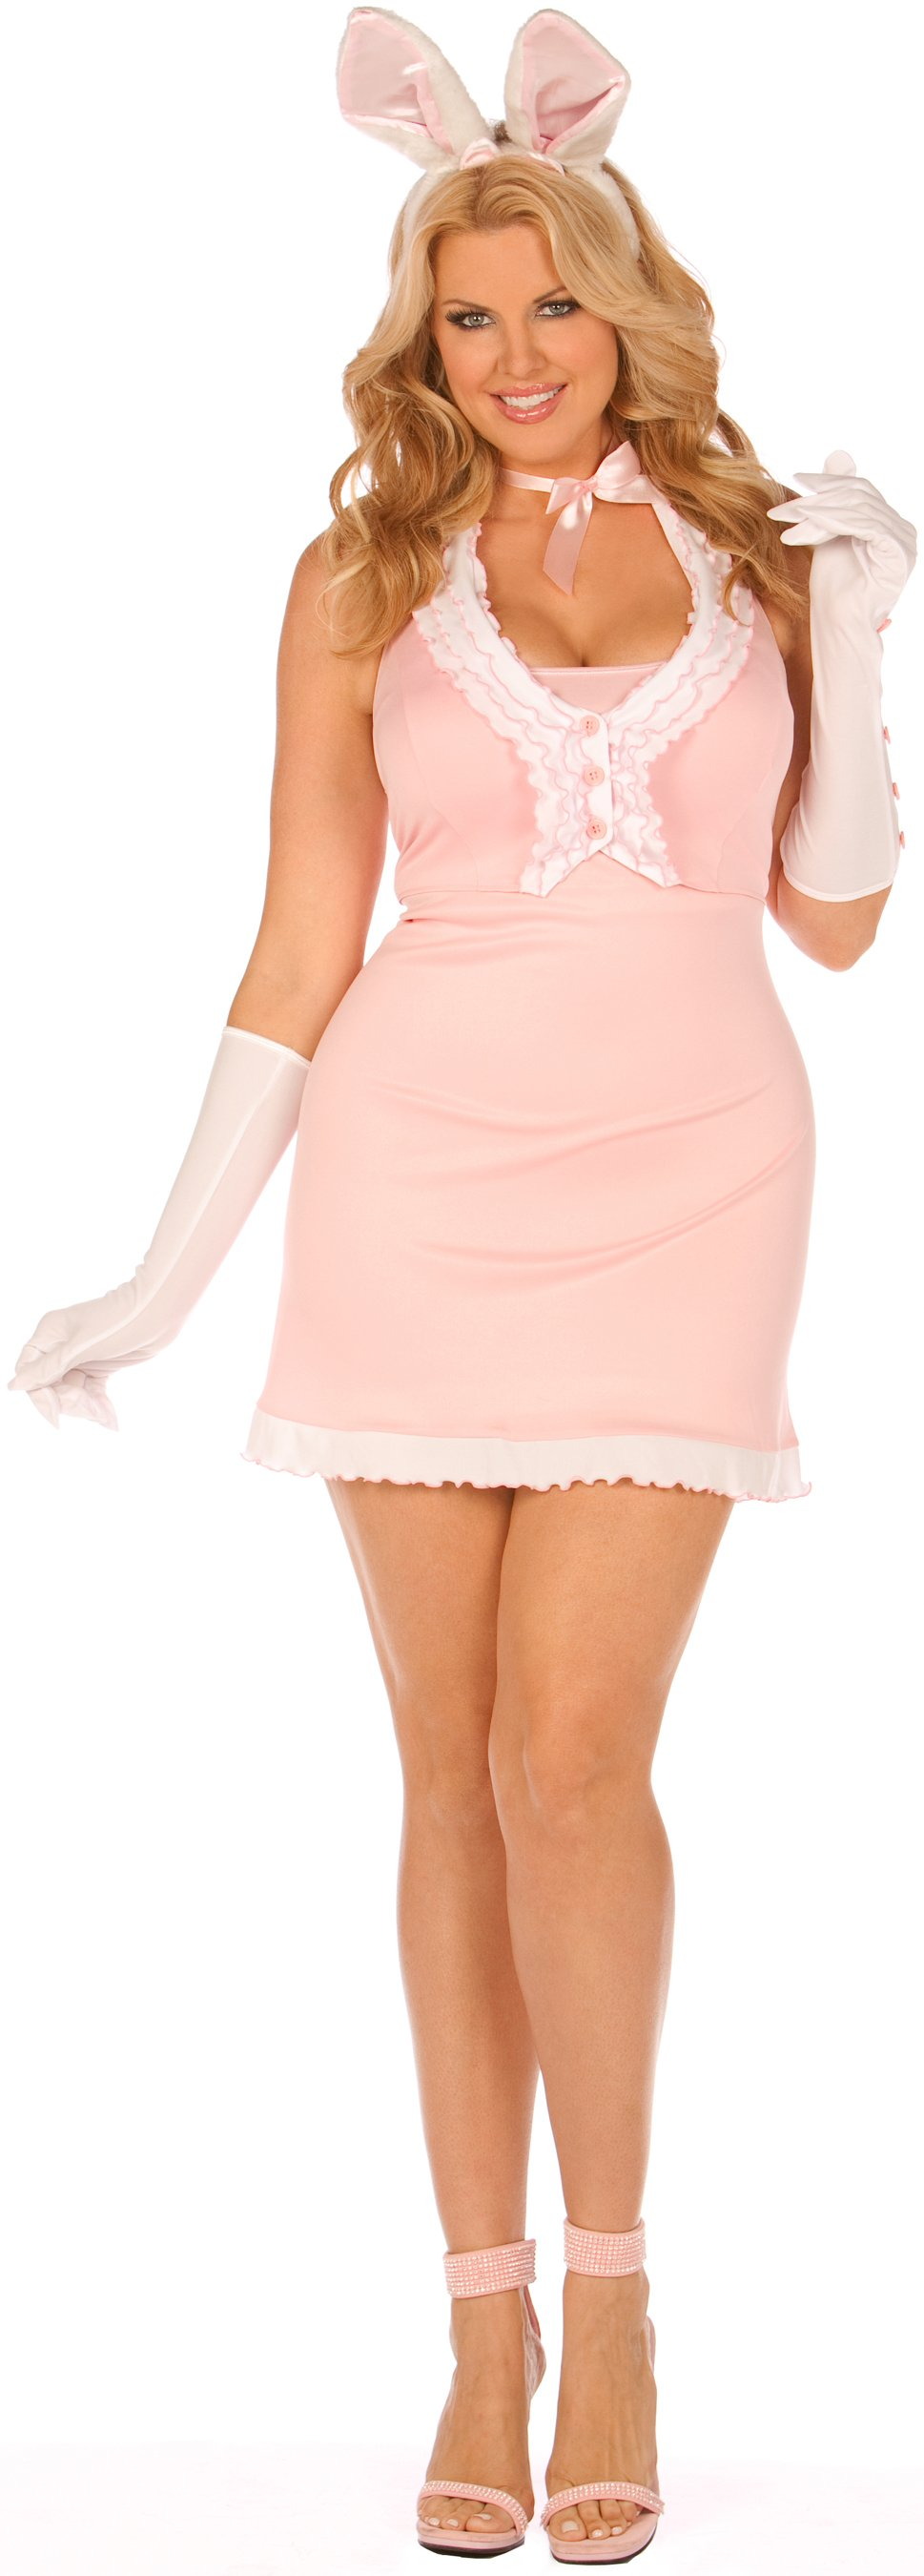 Playtime Bunny Plus Adult Costume